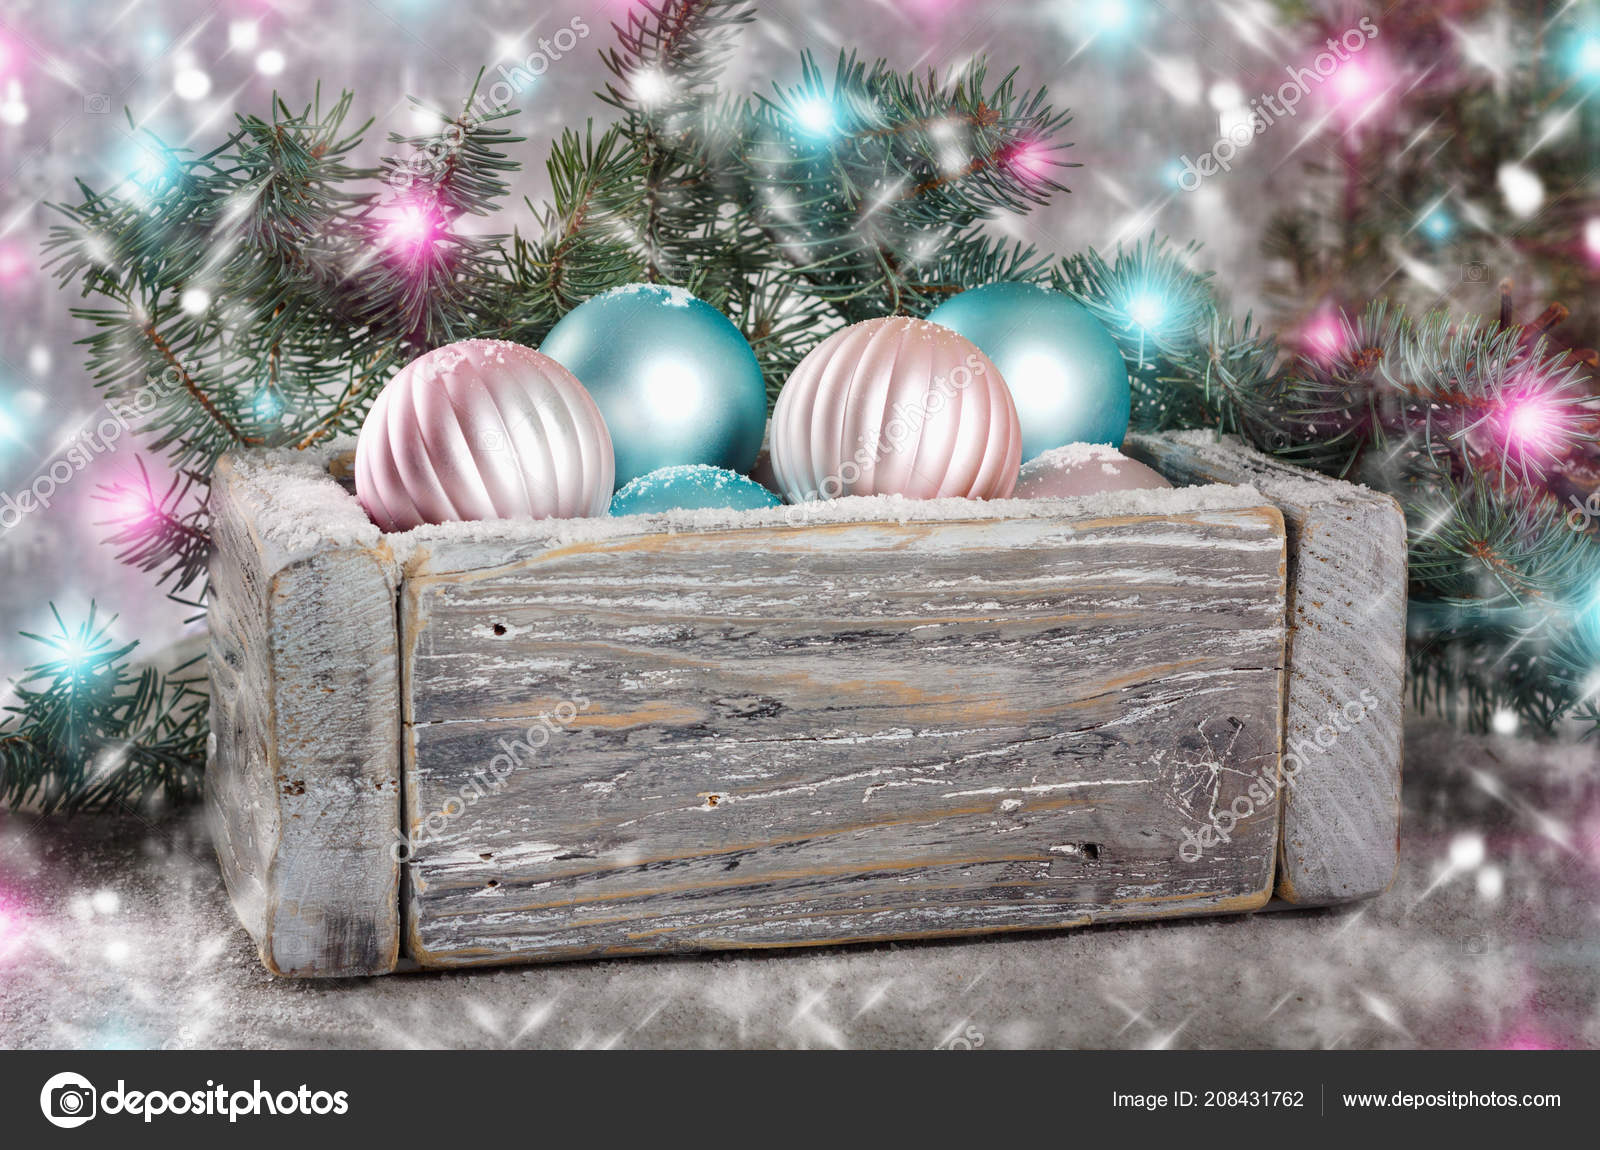 Old Wooden Vintage Box Beautiful Pink Blue Christmas Balls Background Stock Photo Image By C Loraliu 208431762